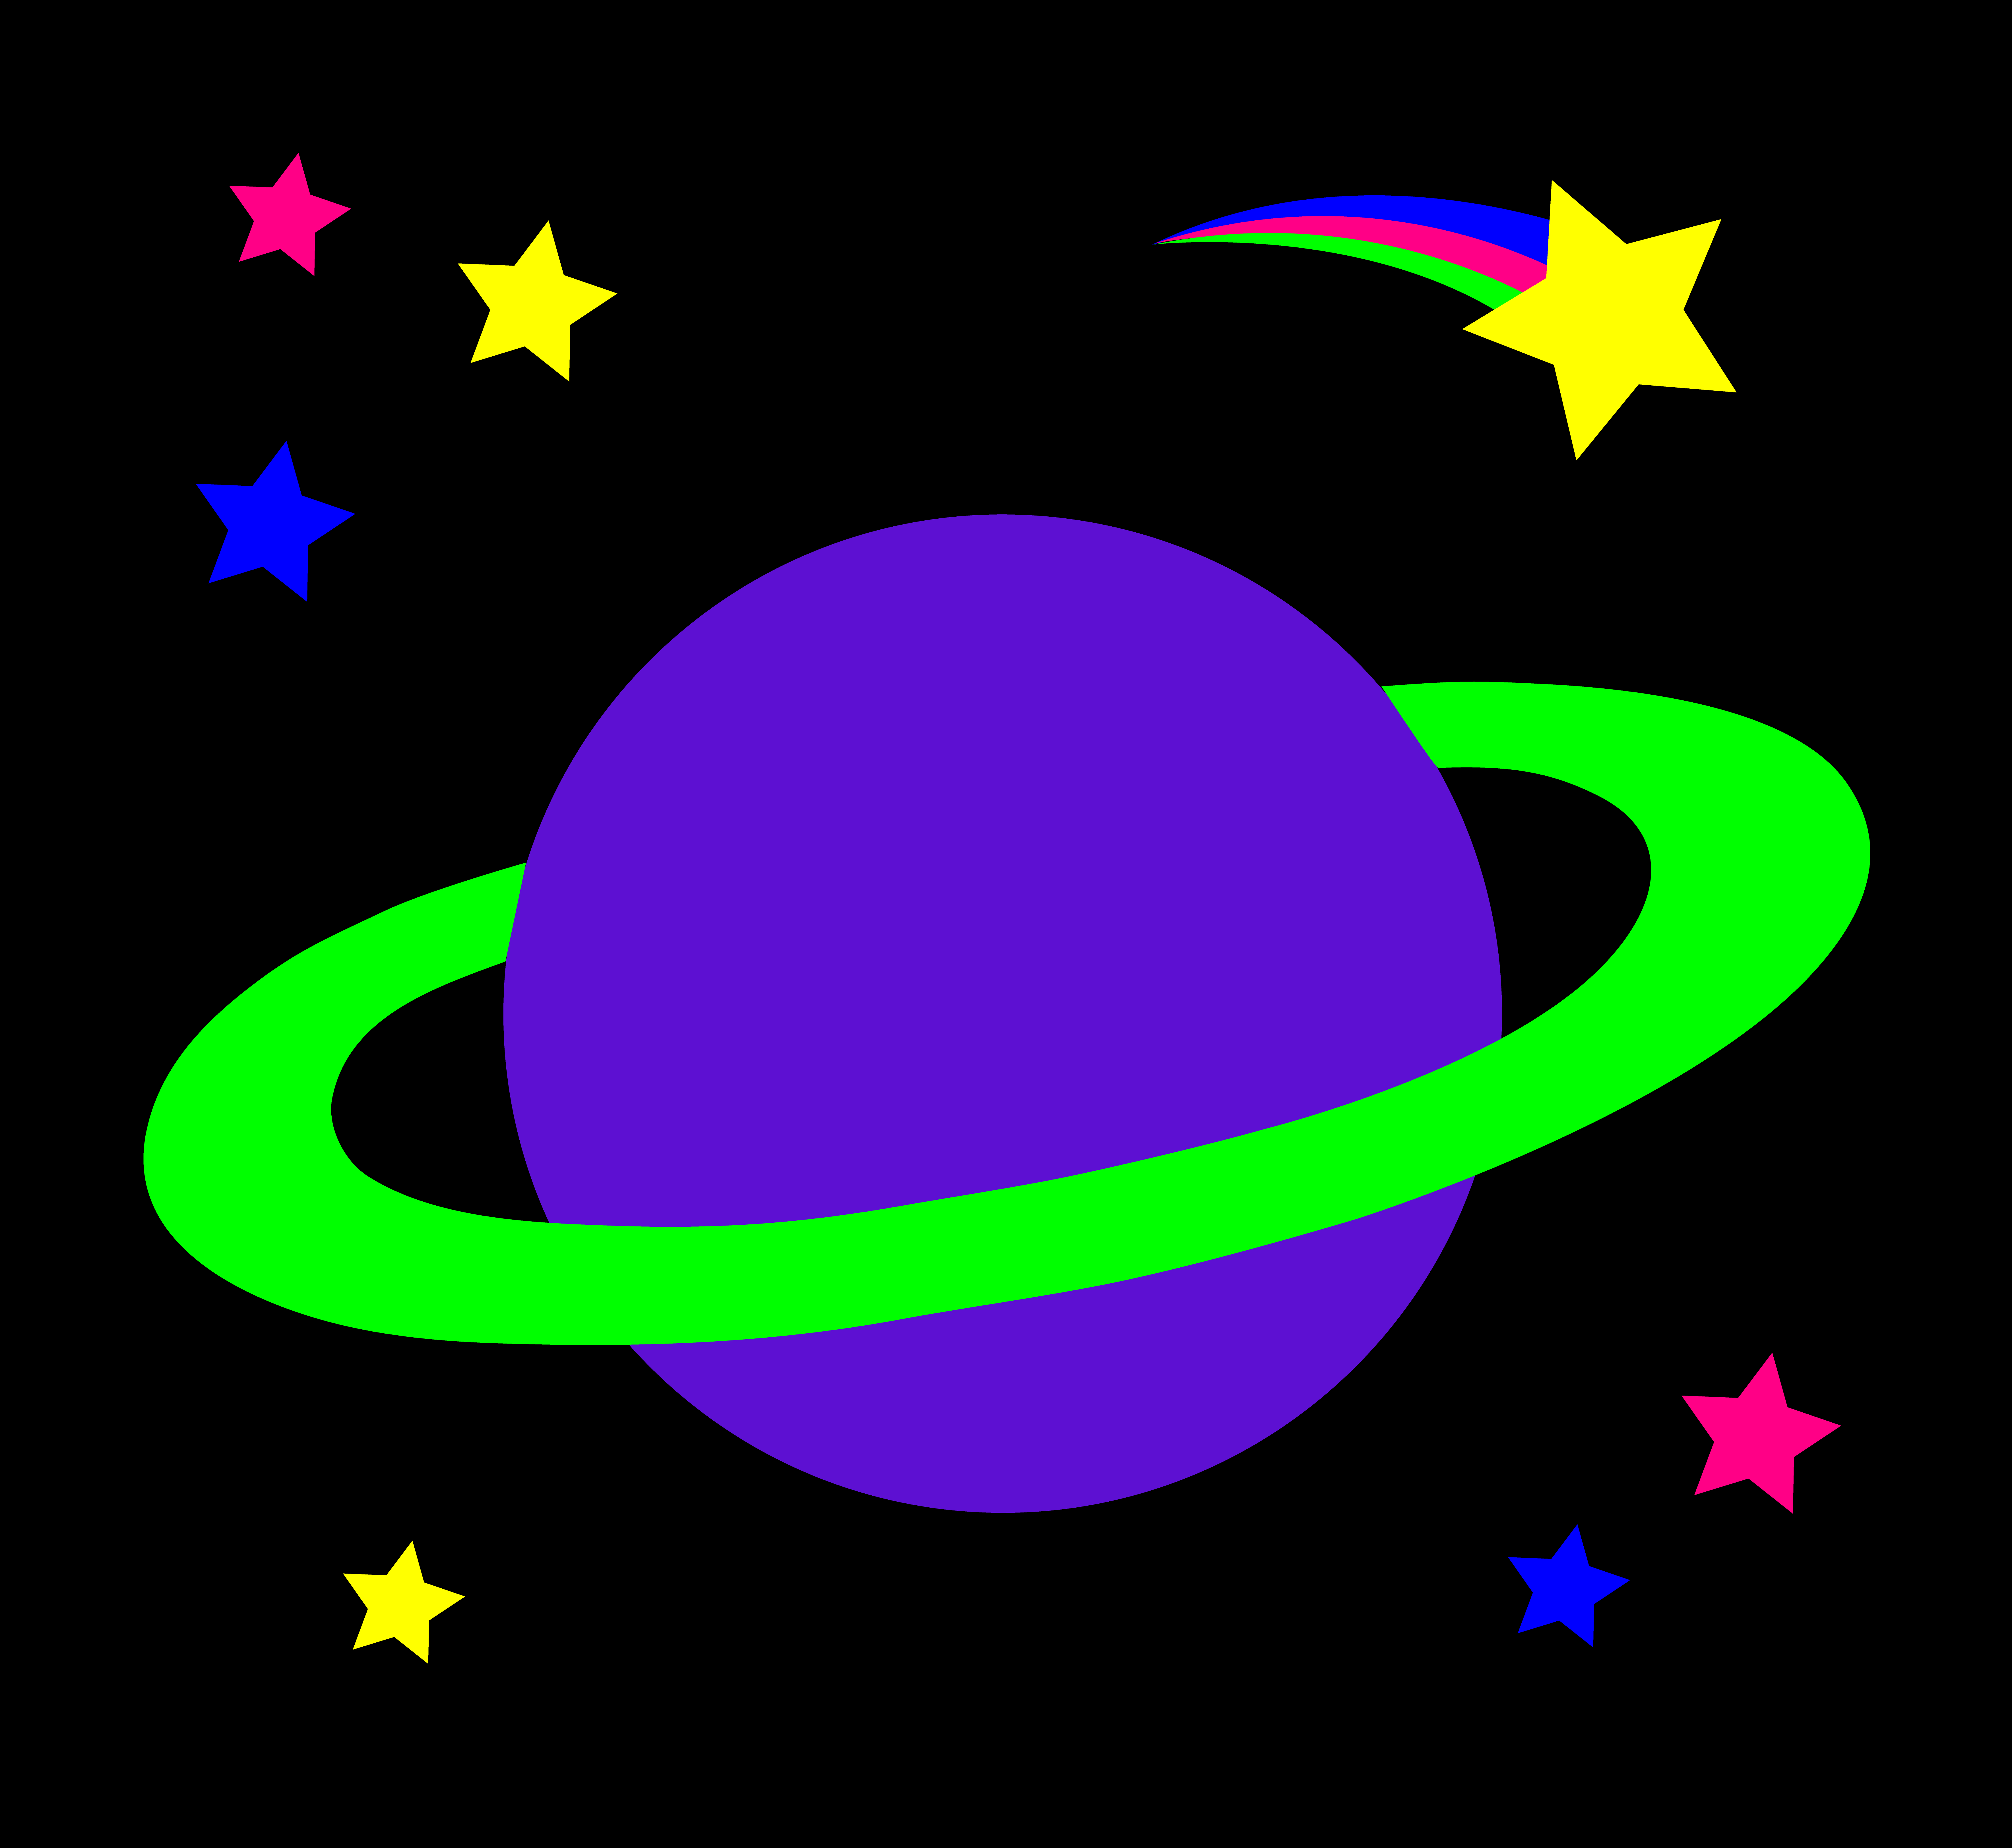 Planets clipart colorful. Cliparts free download best